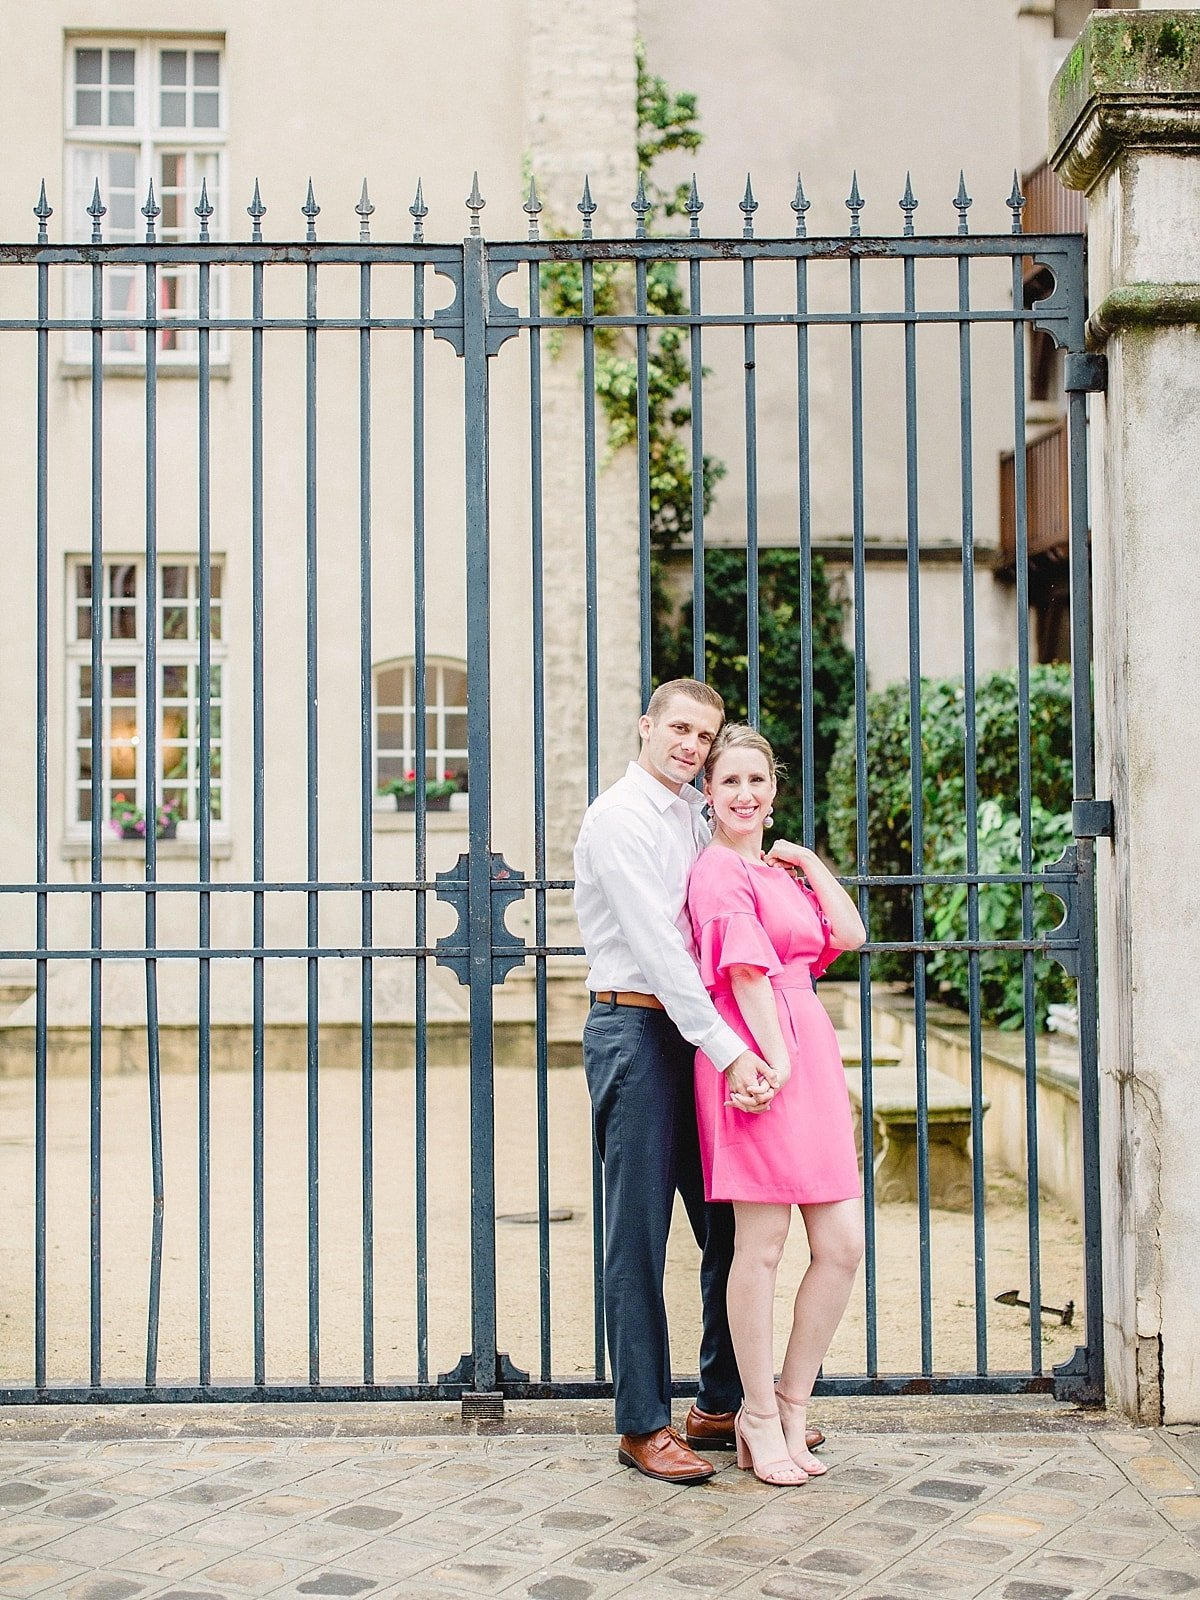 paris-photo-session-anniversary-alicia-yarrish-photography_41